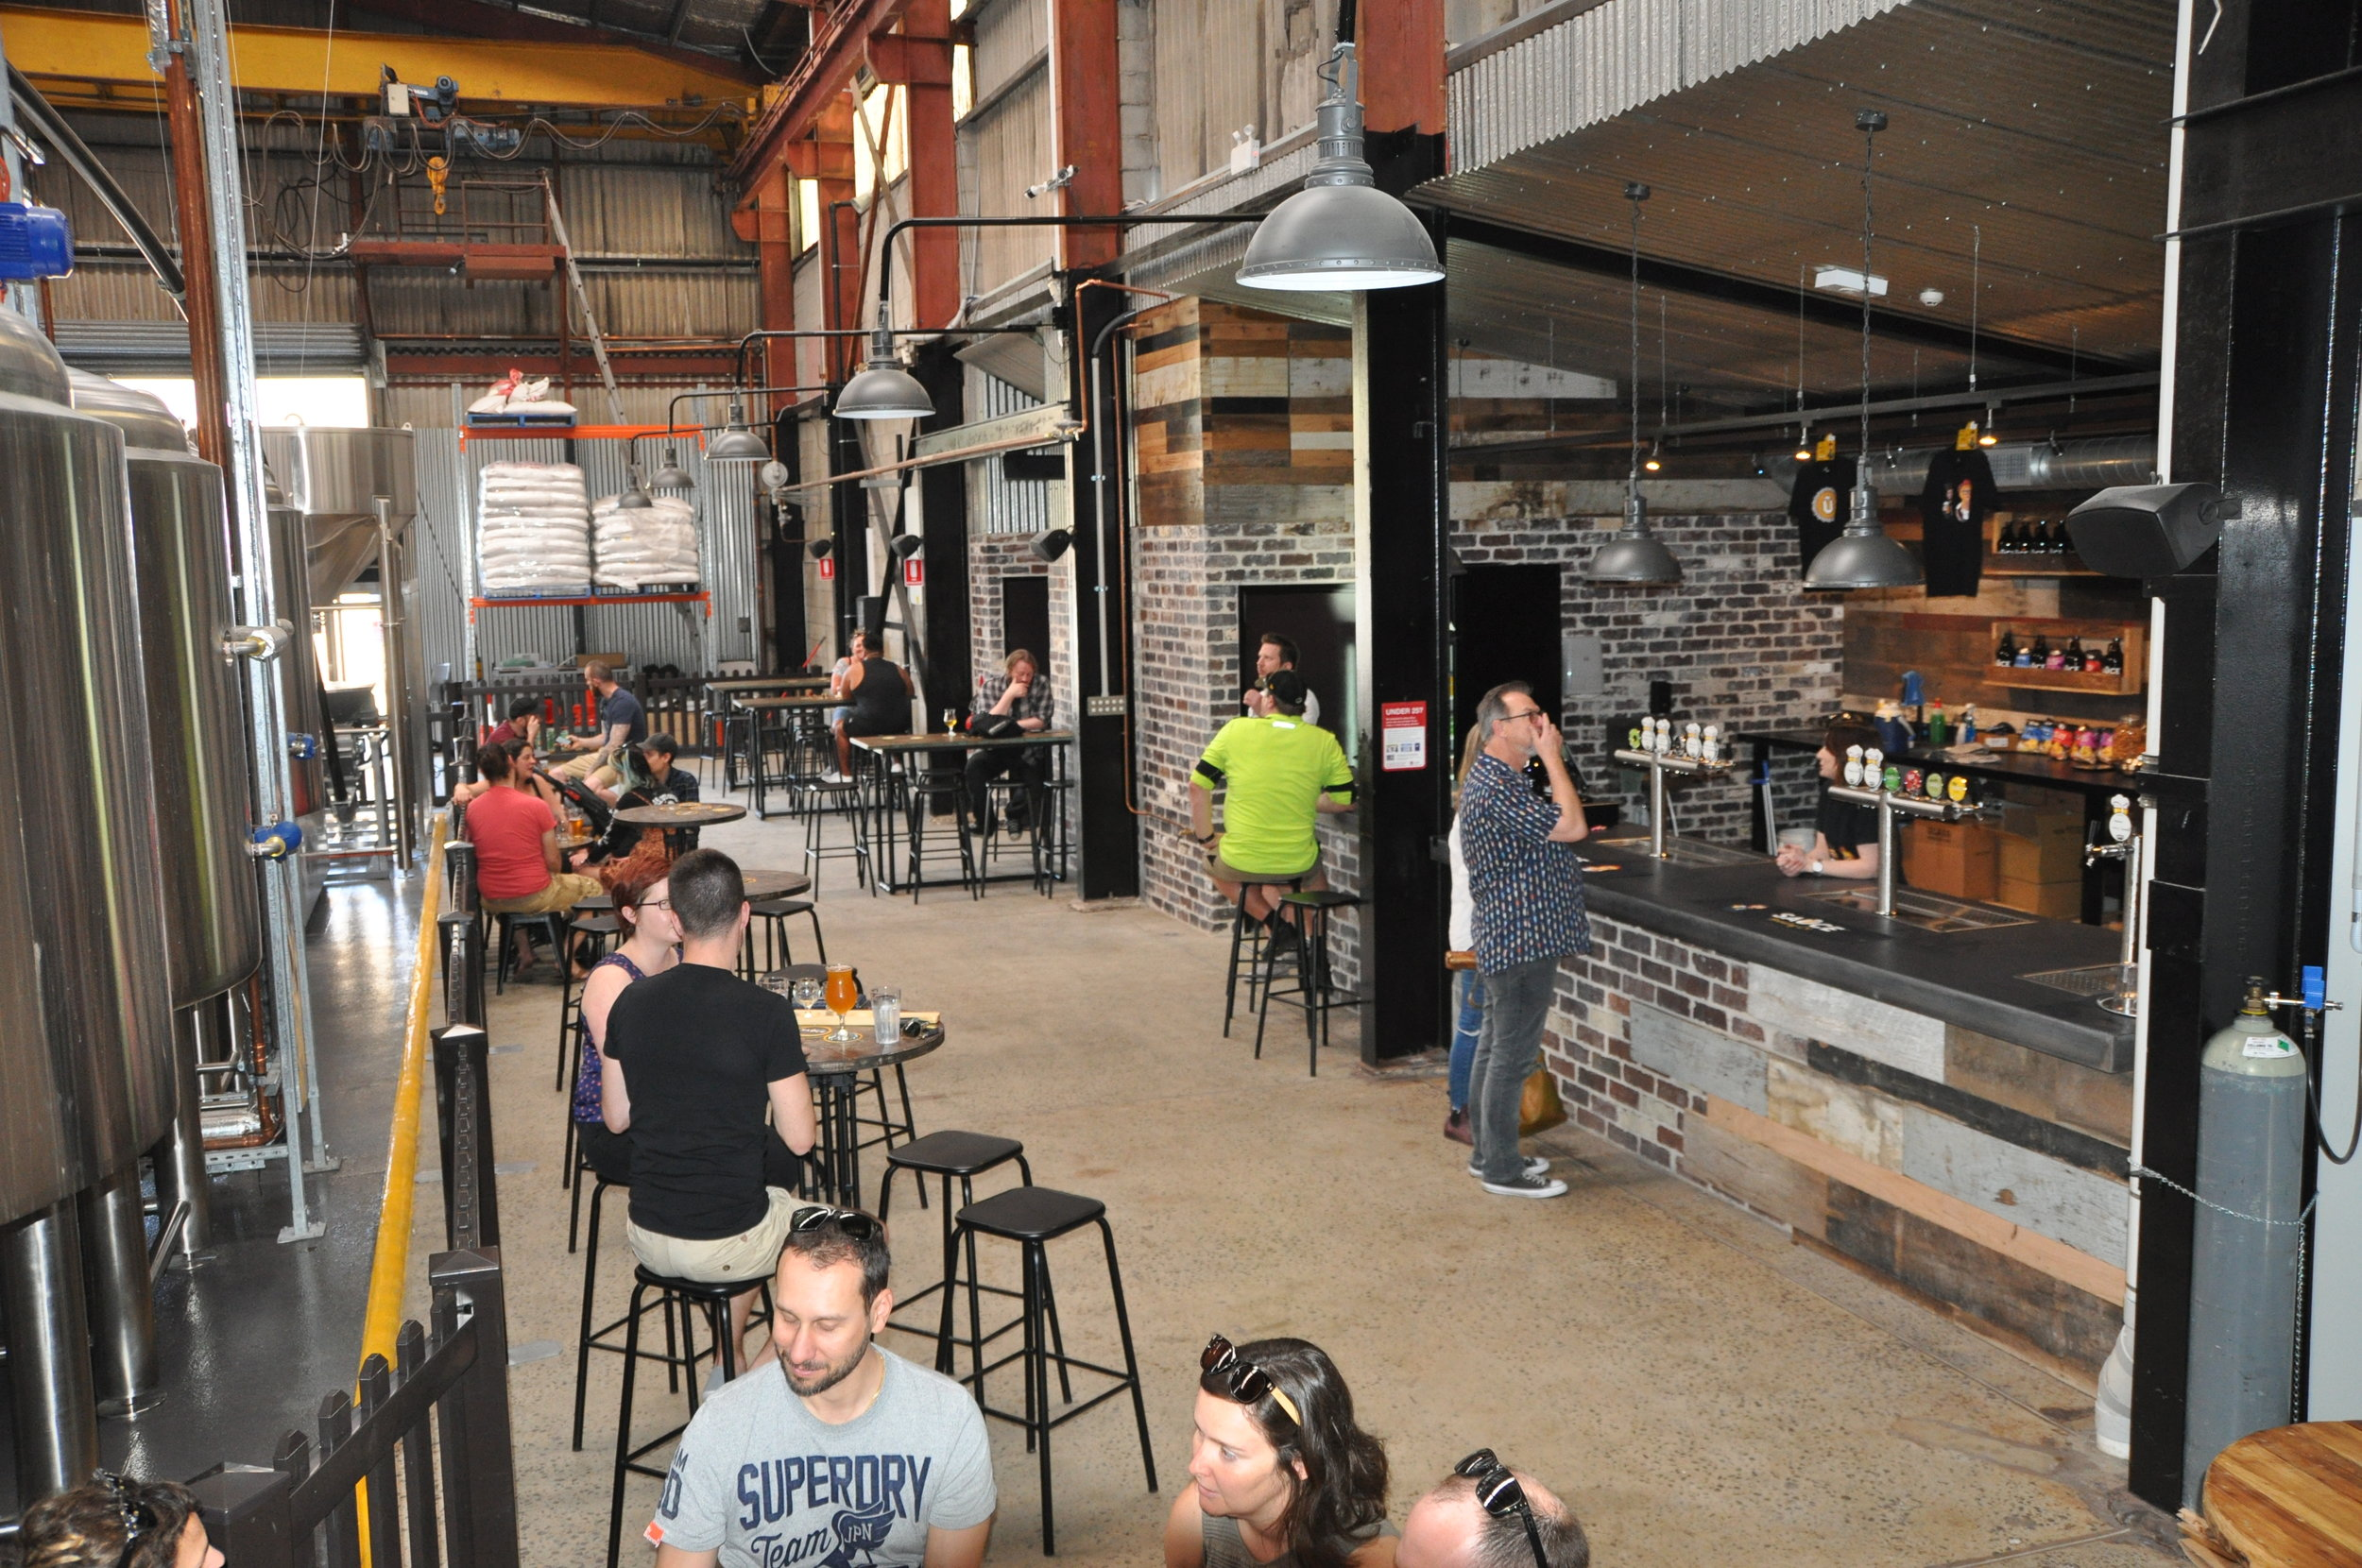 Sauce Brewing's brewhouse and fermenters (and space for a bar for customers to drink where their beer is made).